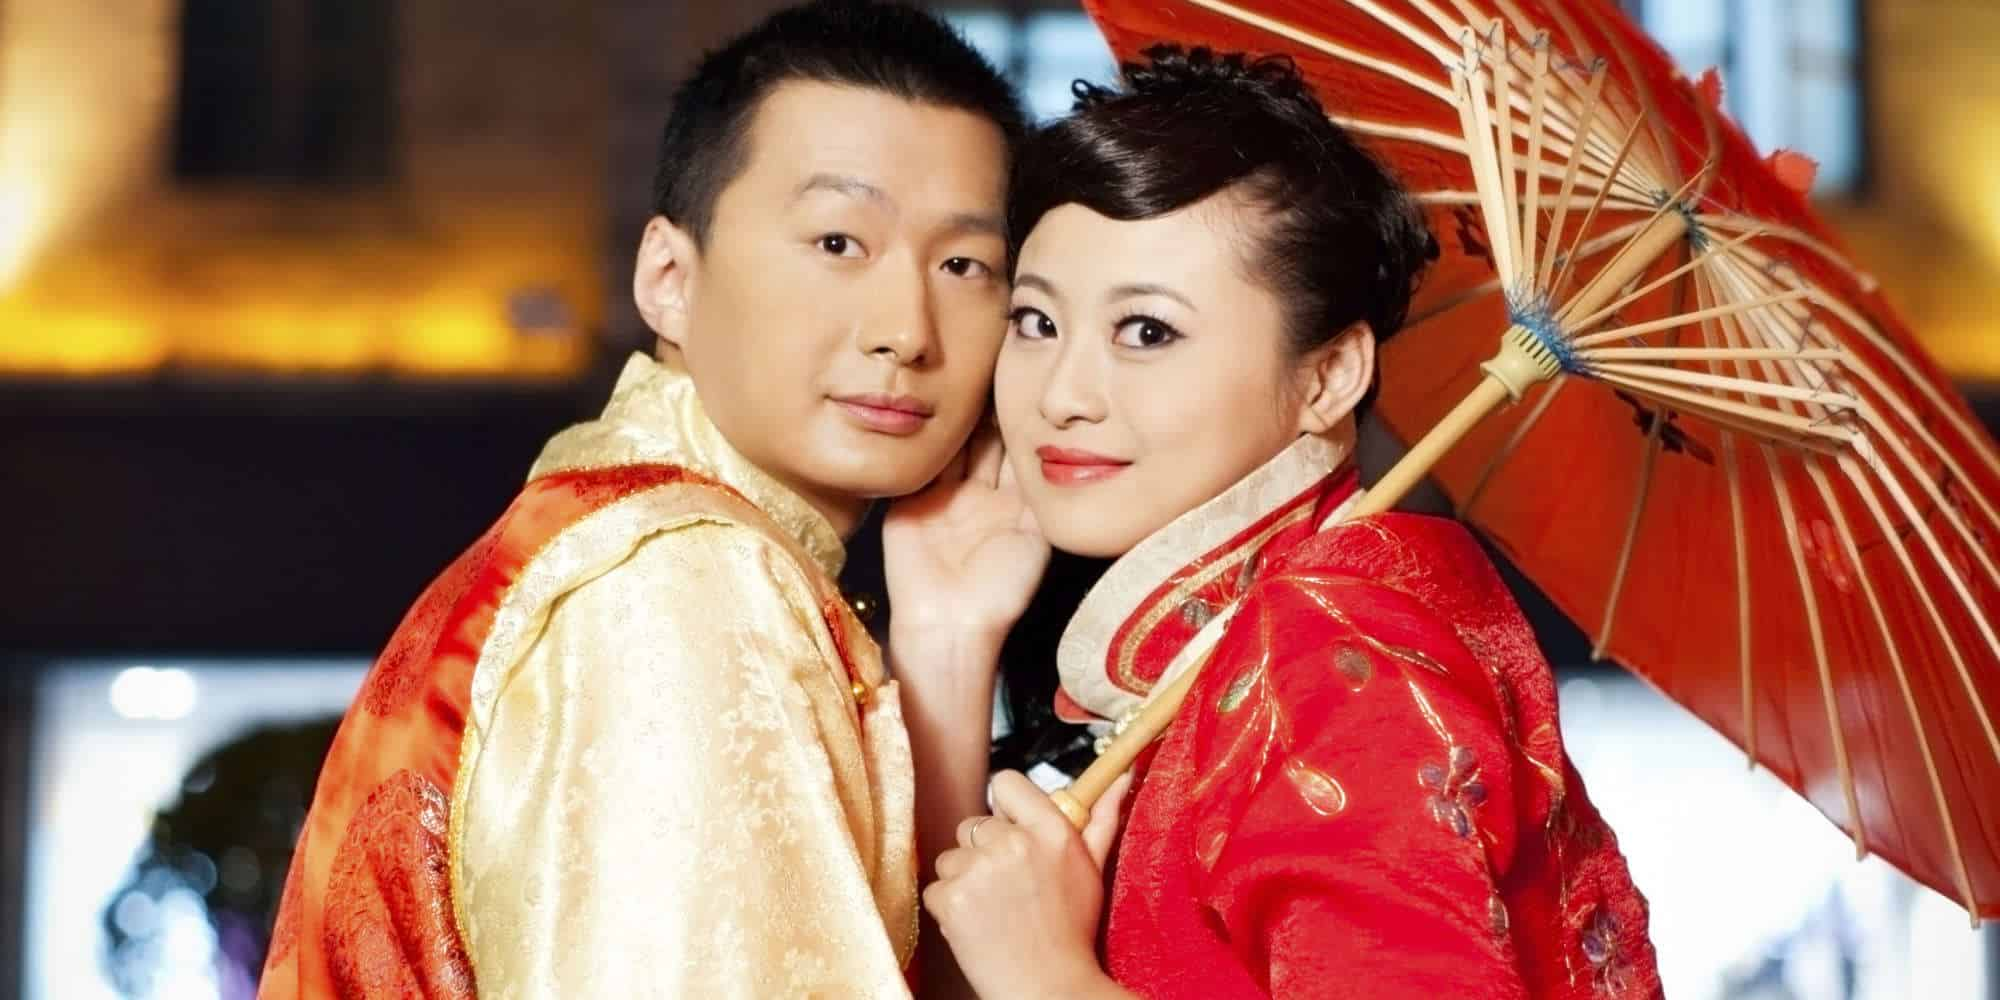 Asian traditional wedding